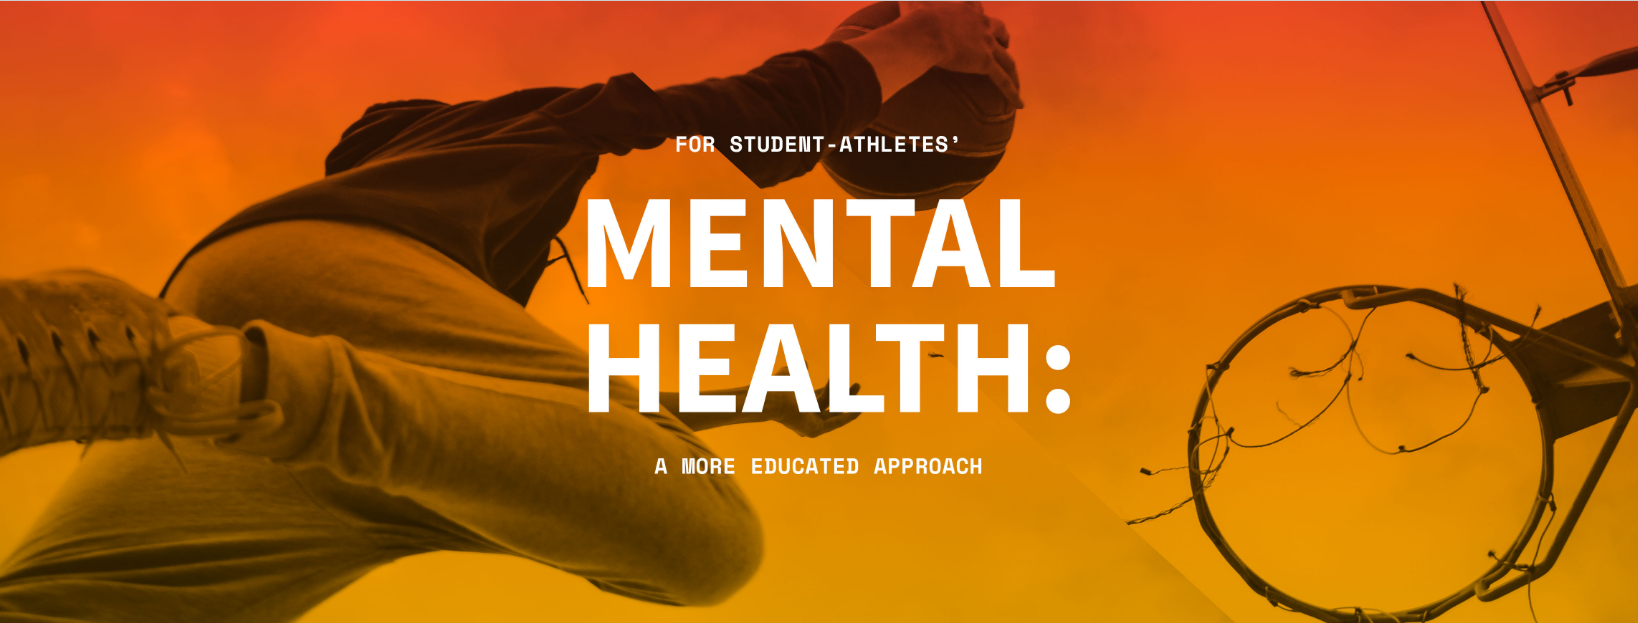 For Student-Athletes' Mental Approach: A More Educated Approach